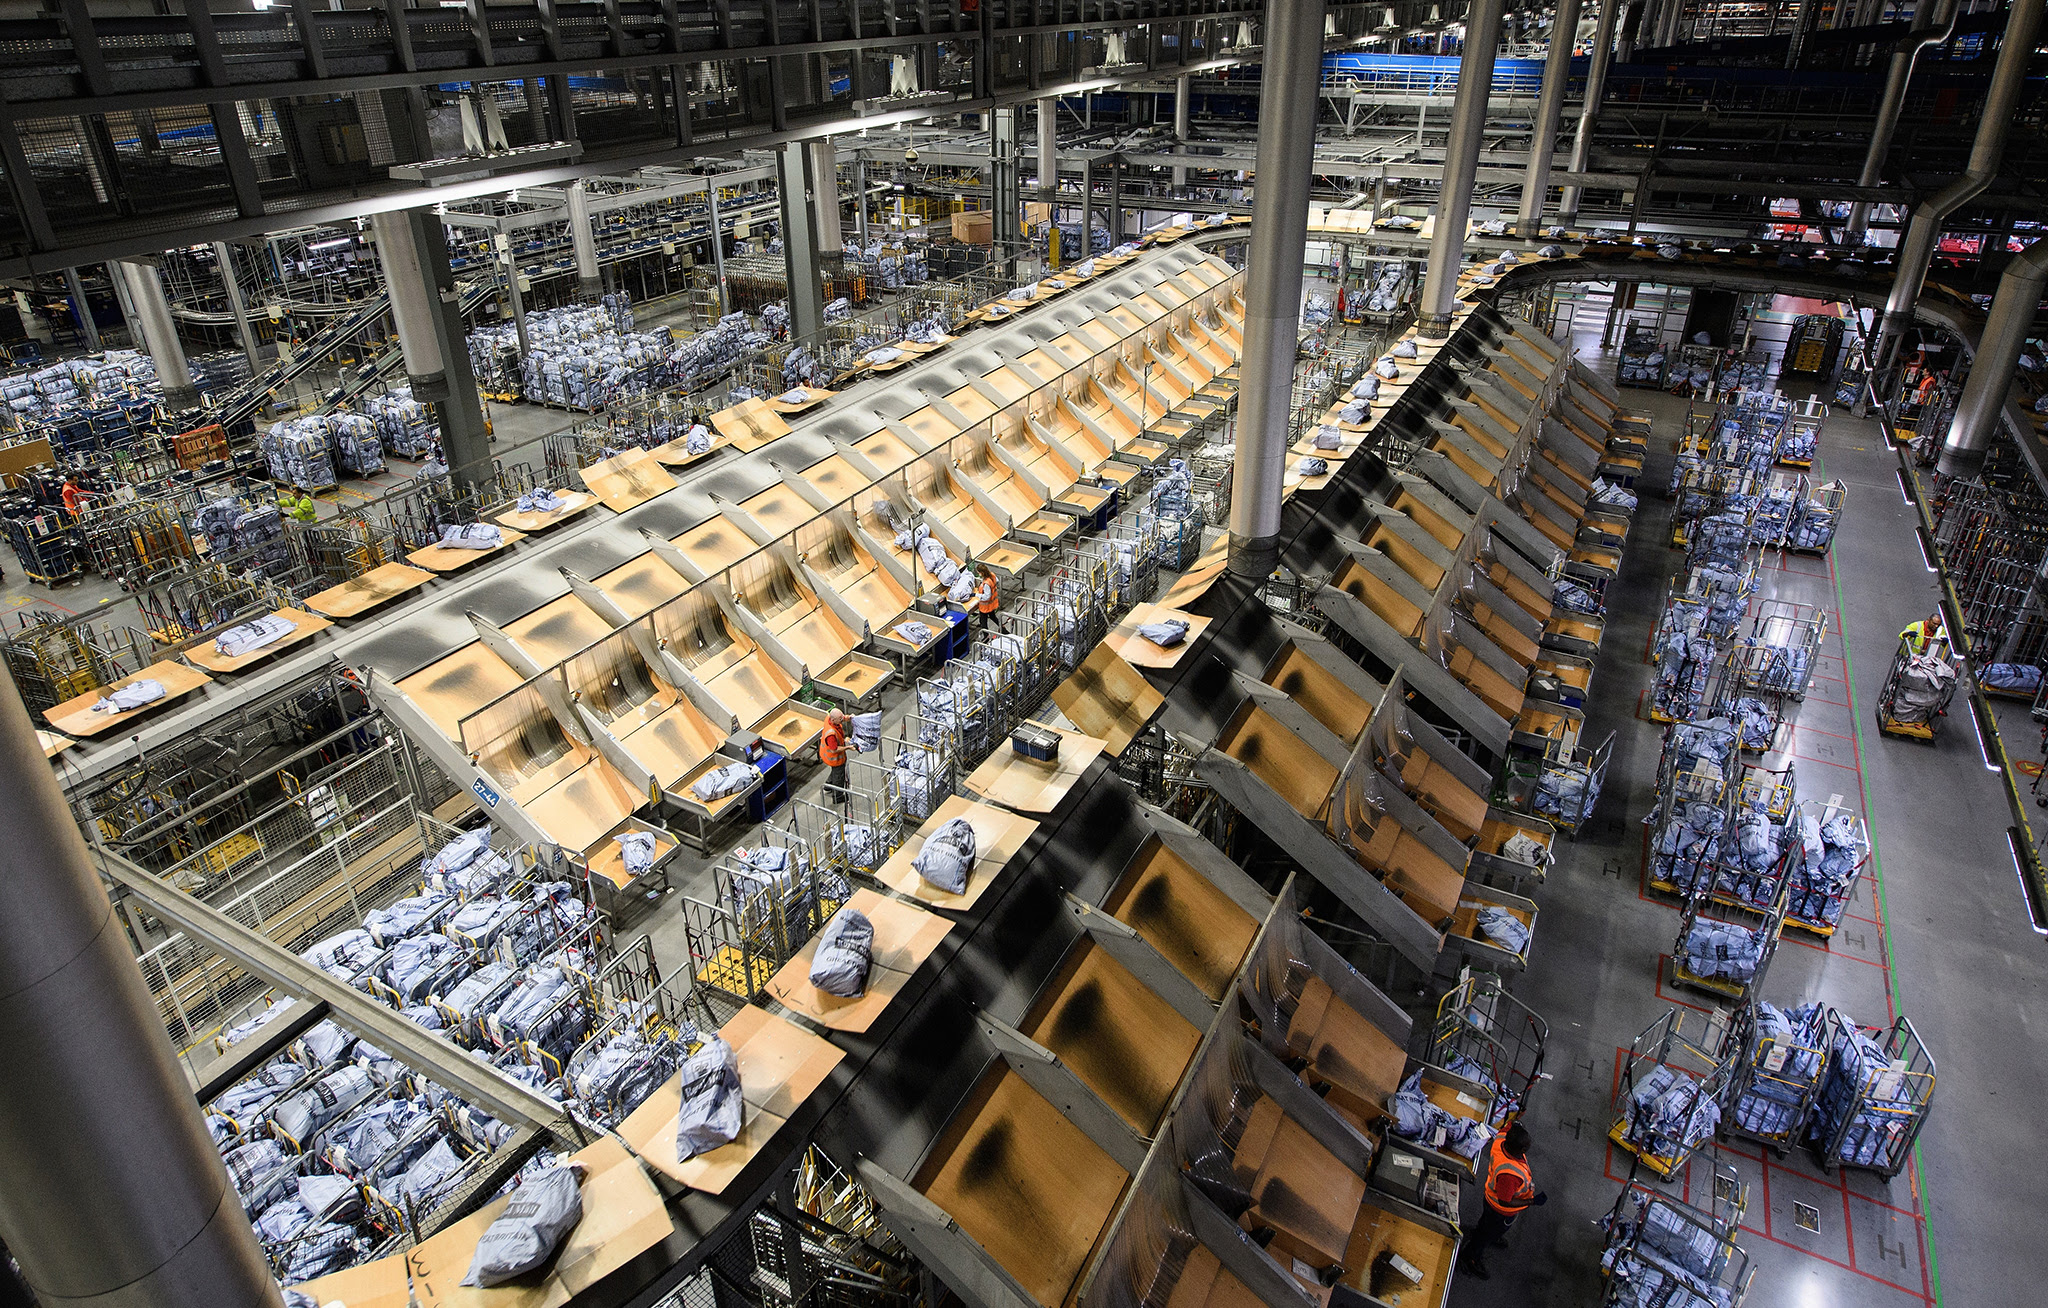 A general view of the conveyor belts and systems that handle the hundreds of thousands of items of mail that pass through the Royal Mail's Worldwide Distribution Centre on December 8, 2016 in Slough, England. The festive season sees a huge spike in postal items coming through the centre from all over the United Kingdom, destined for international destinations.  (Photo by Leon Neal/Getty Images)